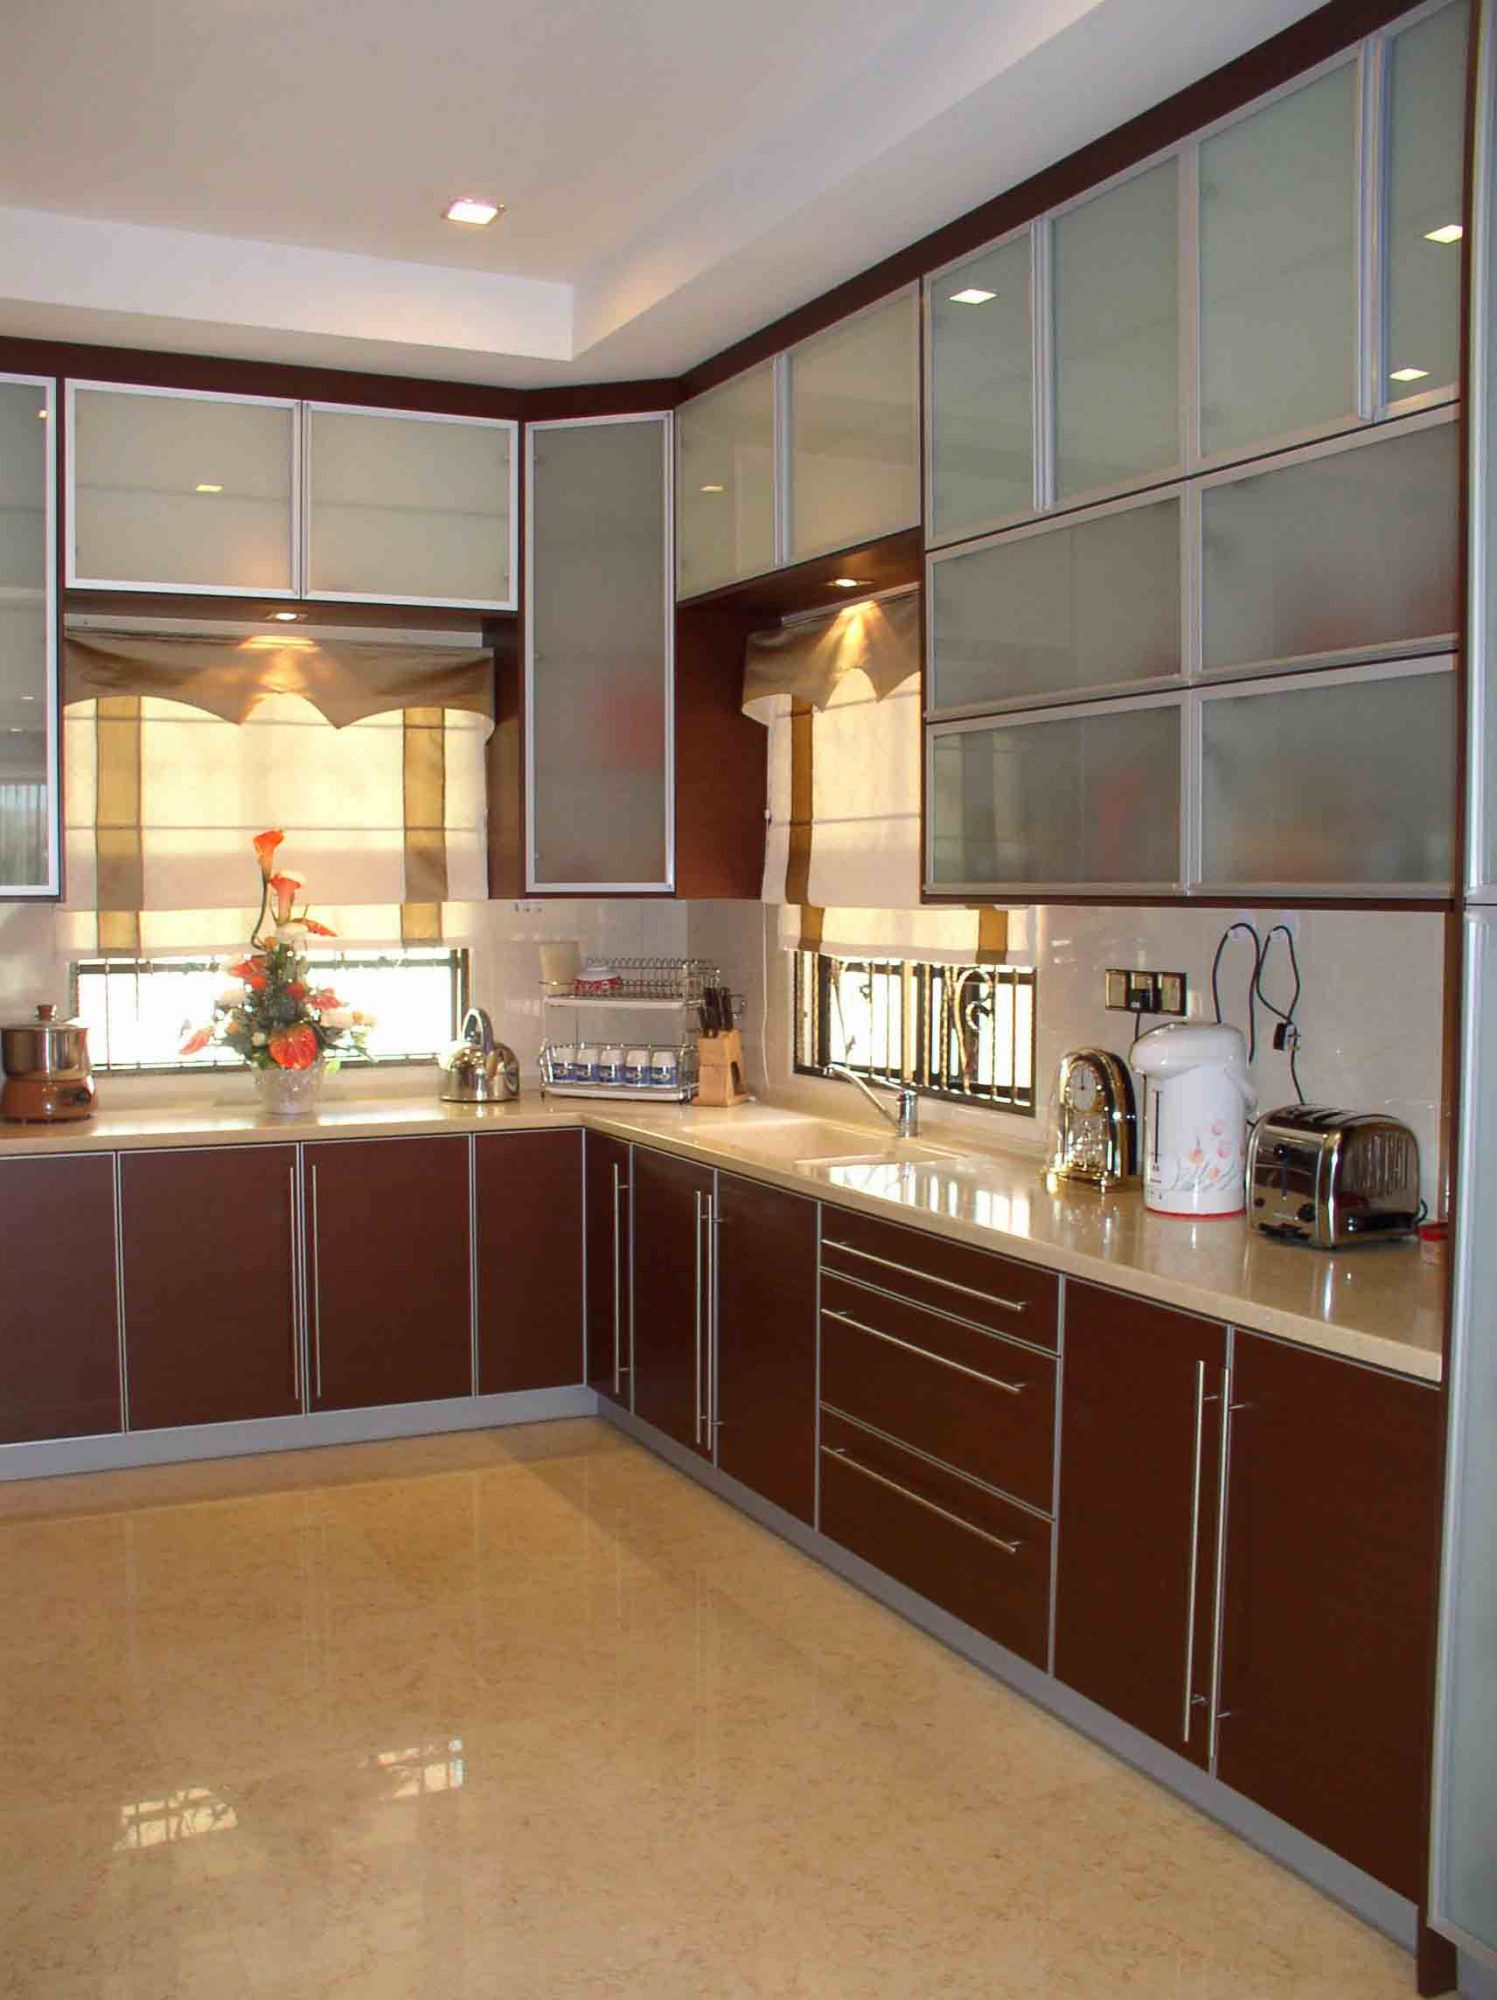 Kitchen Cabinet Remodel Ideas: 20 Popular Kitchen Cabinet Designs In Malaysia